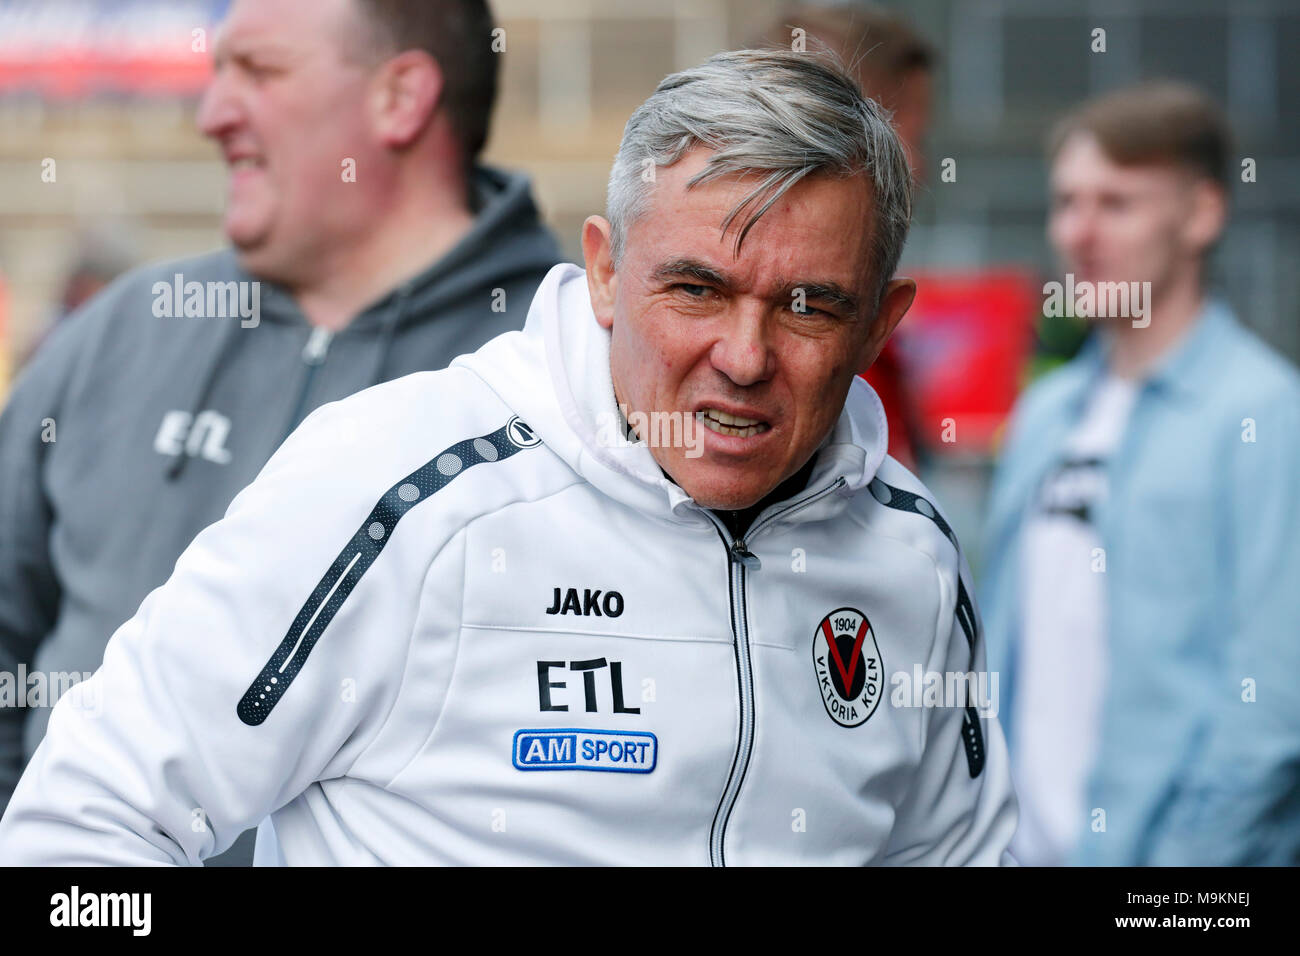 sports, football, Regional League West, 2017/2018, Grotenburg Stadium in Krefeld-Bockum, KFC Uerdingen 05 vs FC Viktoria Koeln 1904 1:1, head coach Olaf Janssen (Koeln) - Stock Image